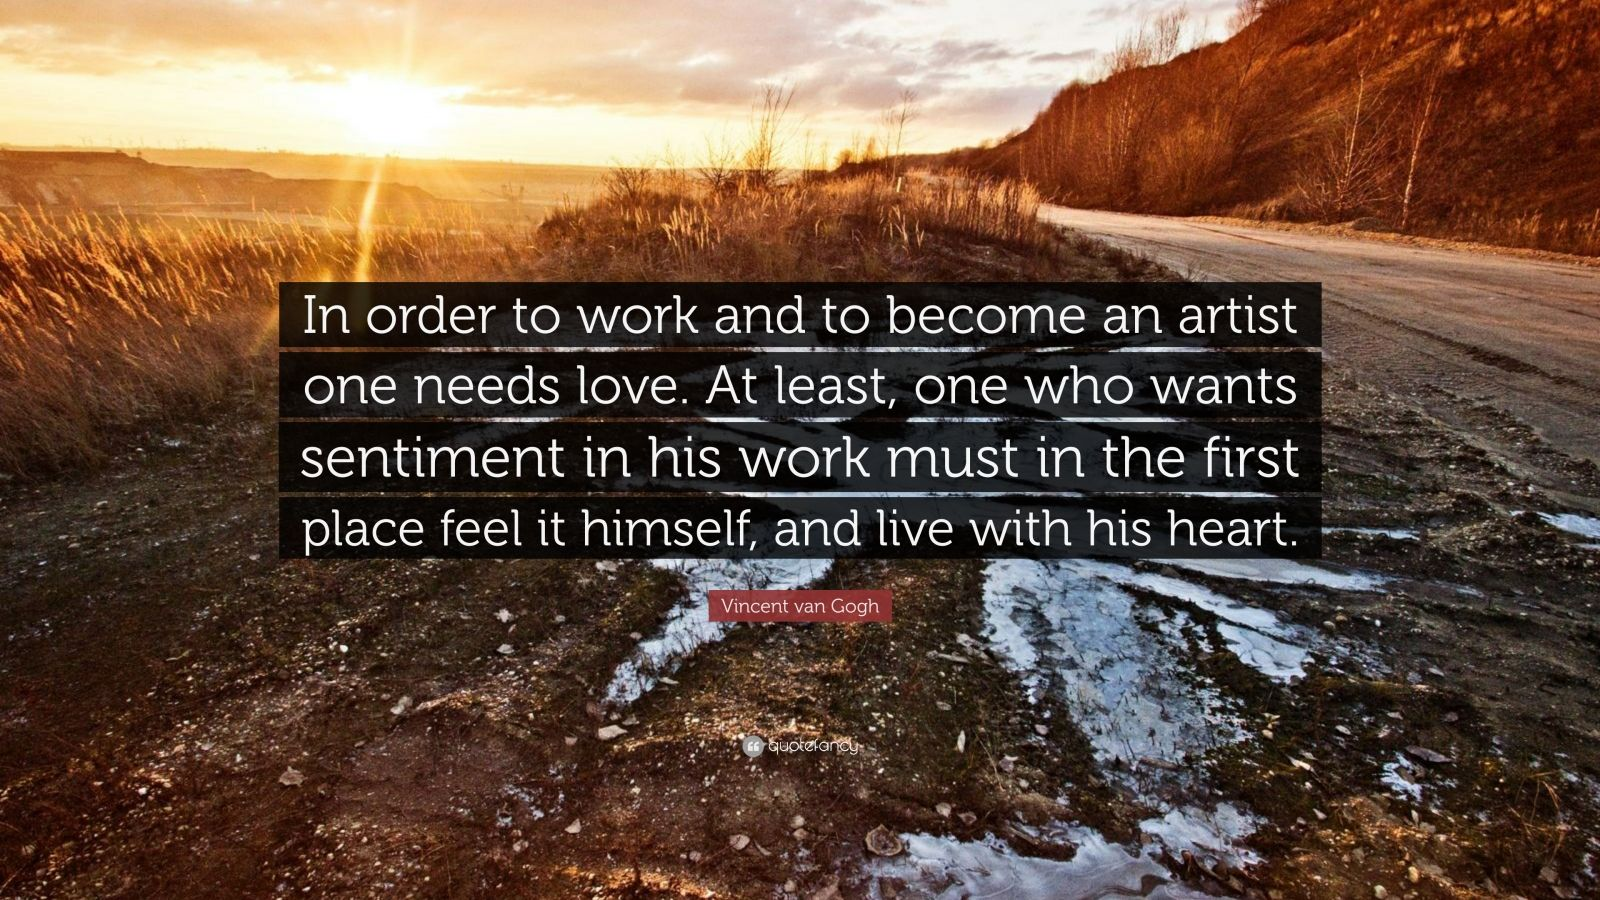 """Vincent van Gogh Quote: """"In order to work and to become an artist one needs love. At least, one who wants sentiment in his work must in the first place feel it himself, and live with his heart."""""""